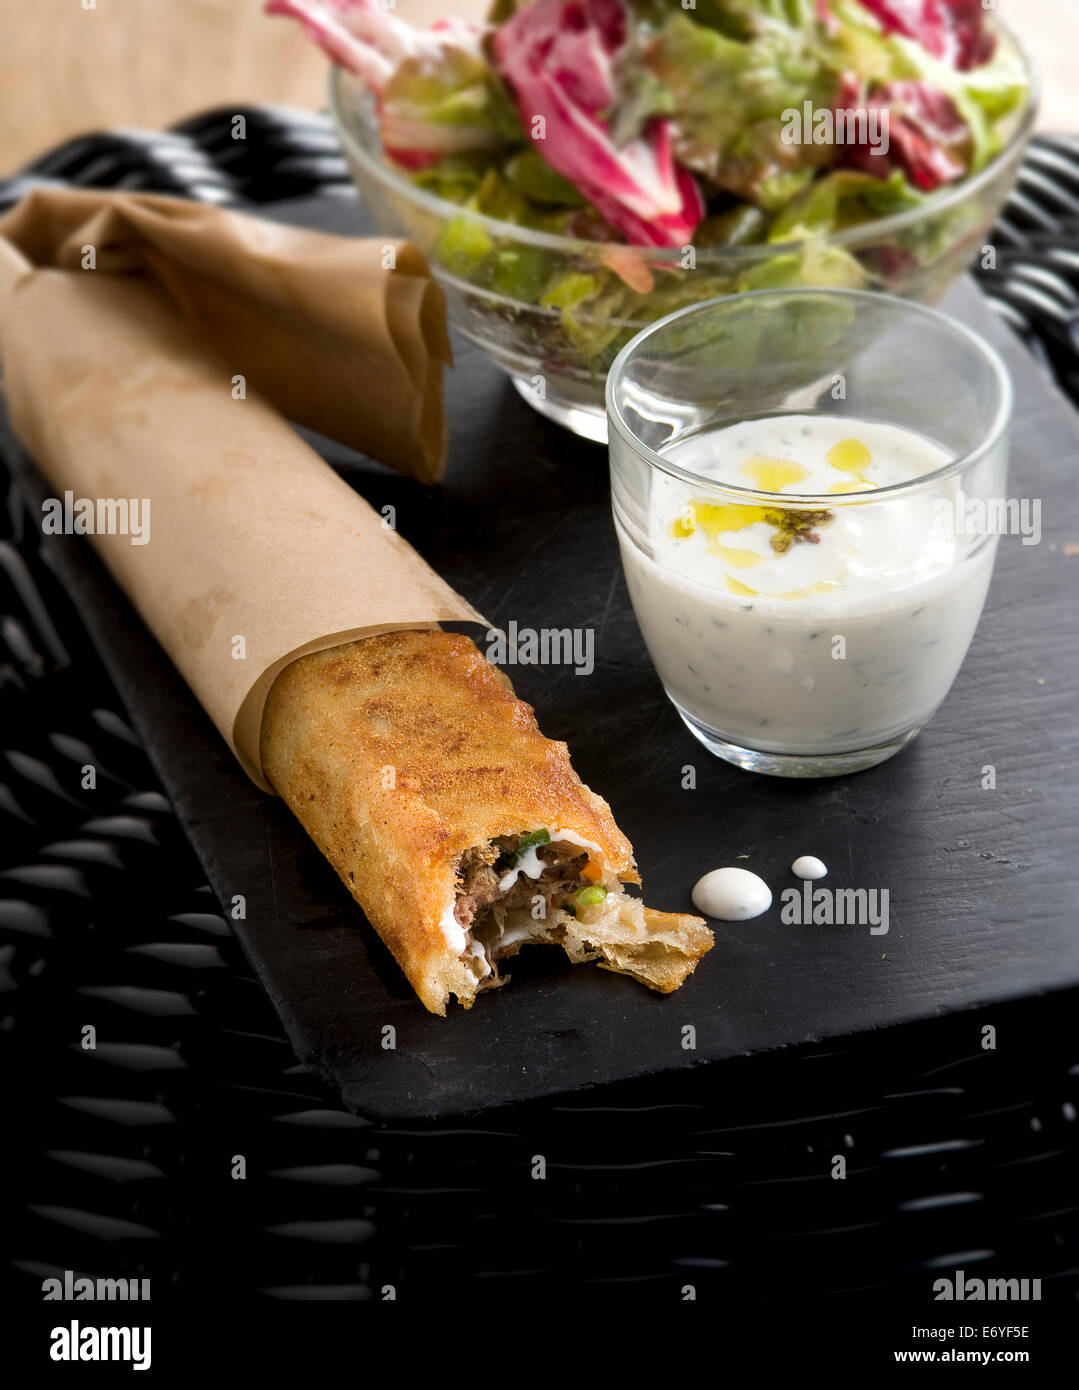 Meat And Filo Pastry Roll Stock Photo Royalty Free Image